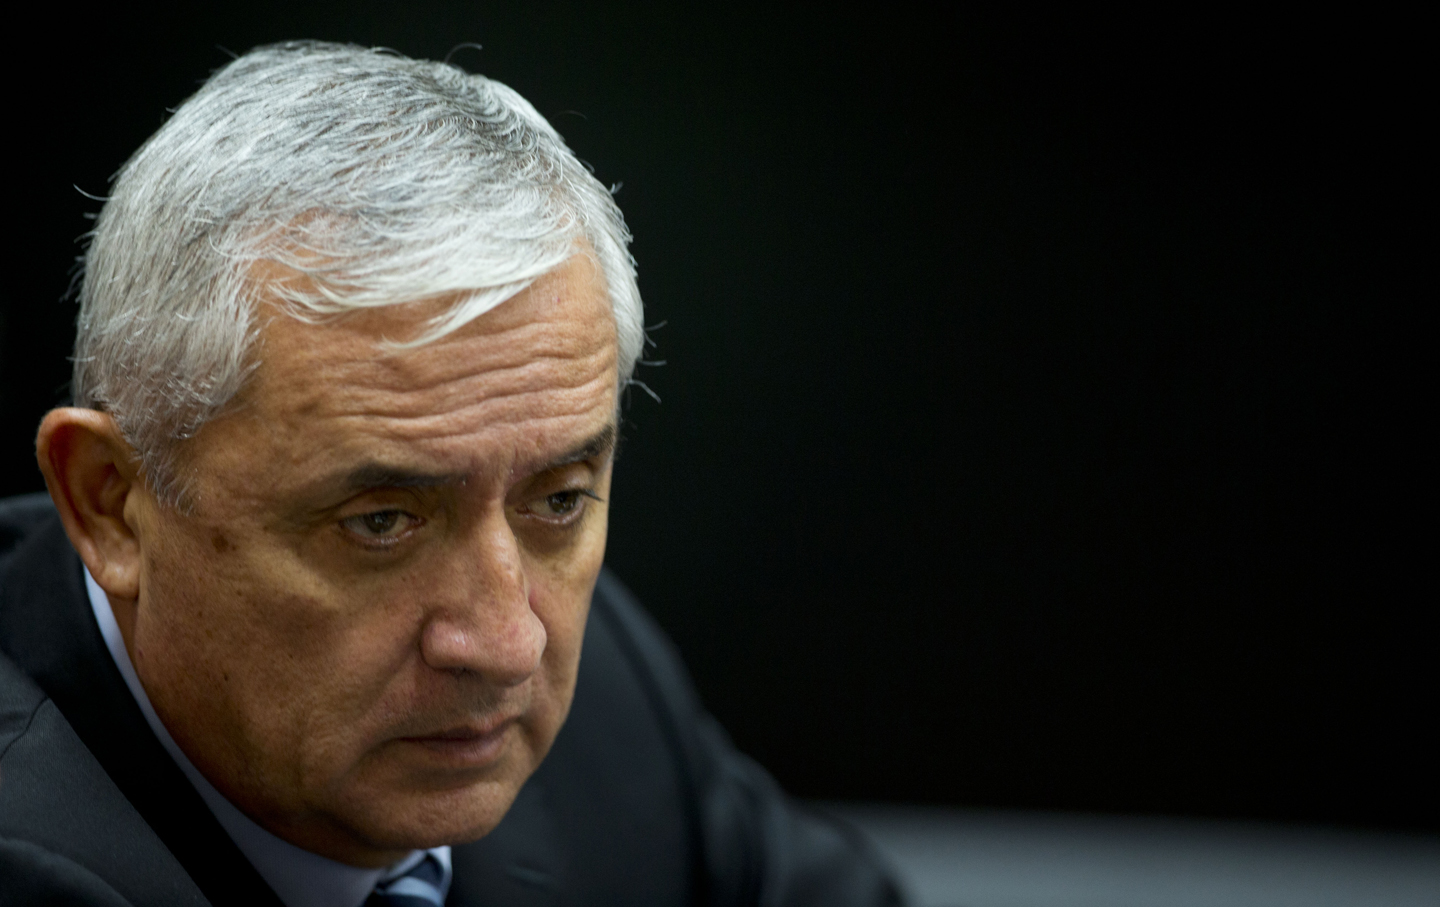 Otto Pérez Molina attends a corruption hearing, Sept. 8, 2015.